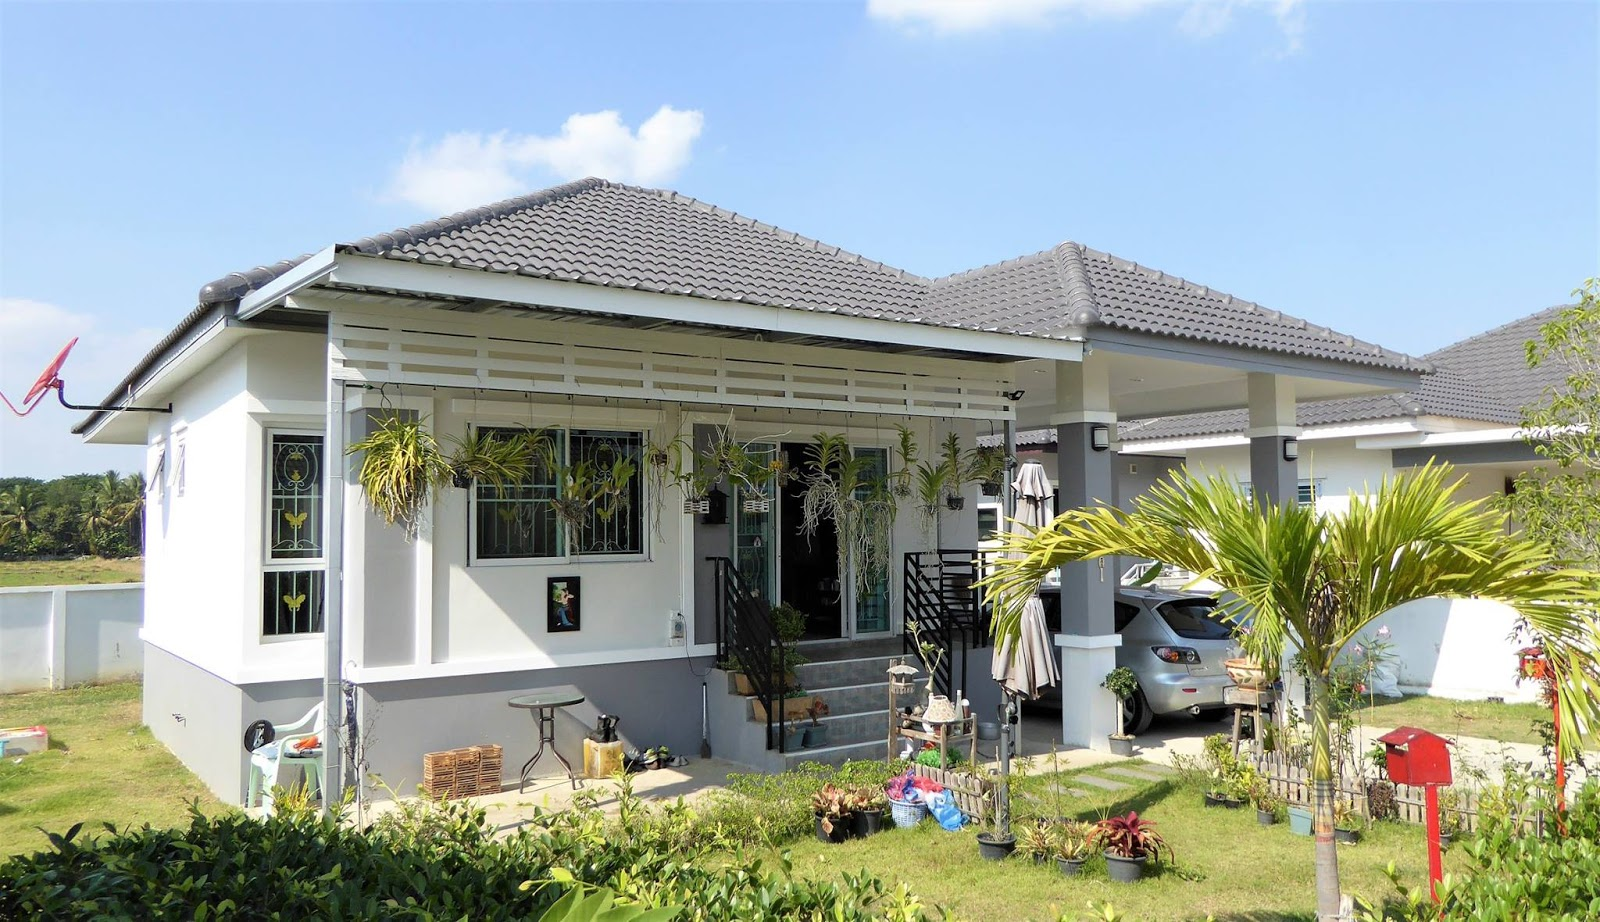 These three bungalow house plan consists of 1-3 bedrooms, 1-2 bathroom, kitchen, a living room and a terrace outside. With a living area of approximately under 115 square meters in construction costs more than 670,000 baht (19,400 USD)